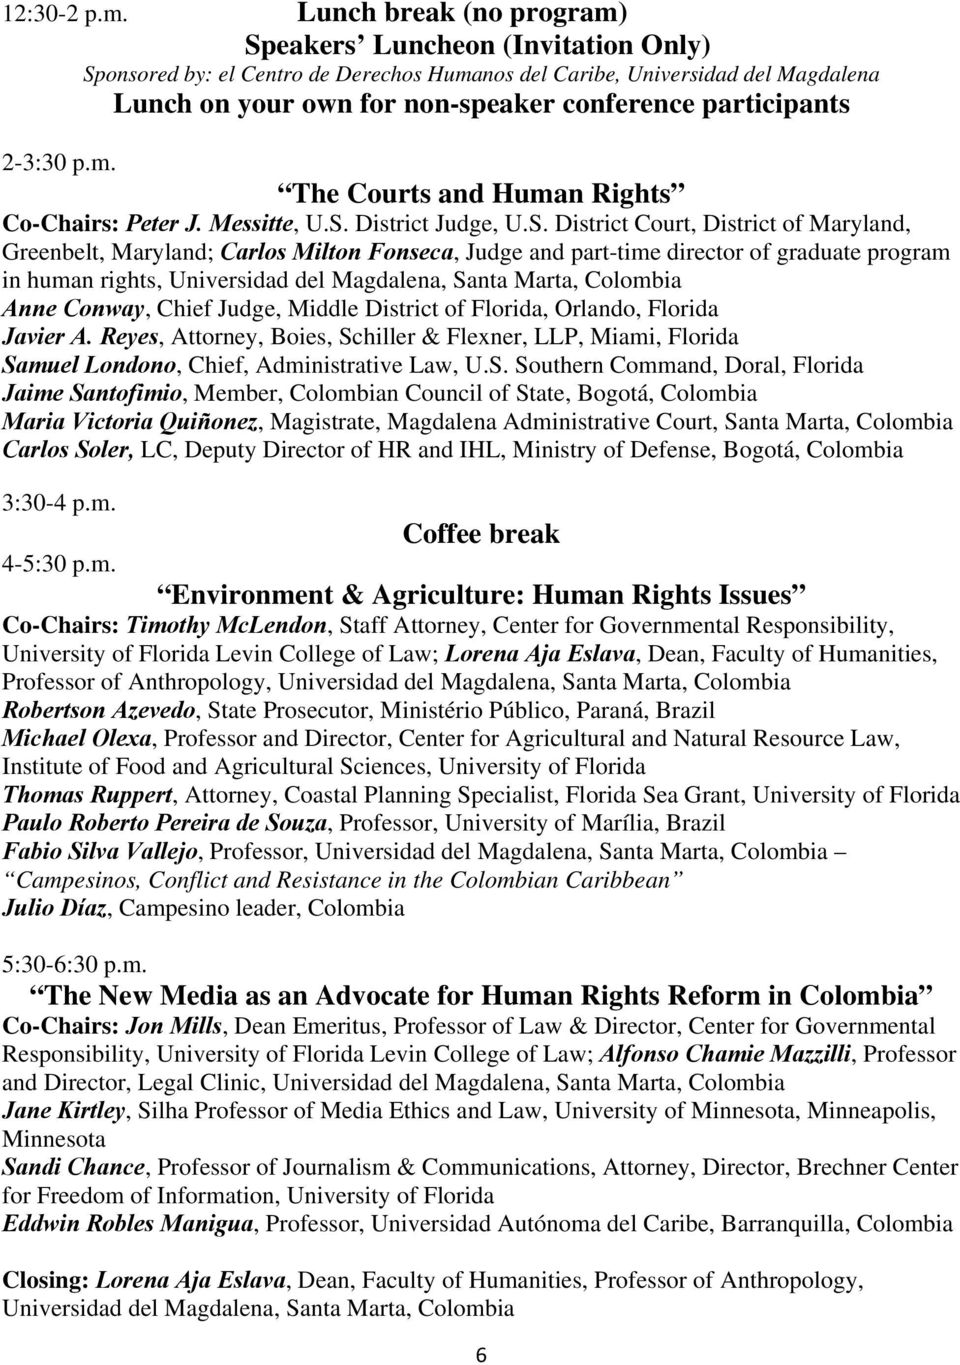 participants 2-3:30 p.m. The Courts and Human Rights Co-Chairs: Peter J. Messitte, U.S.